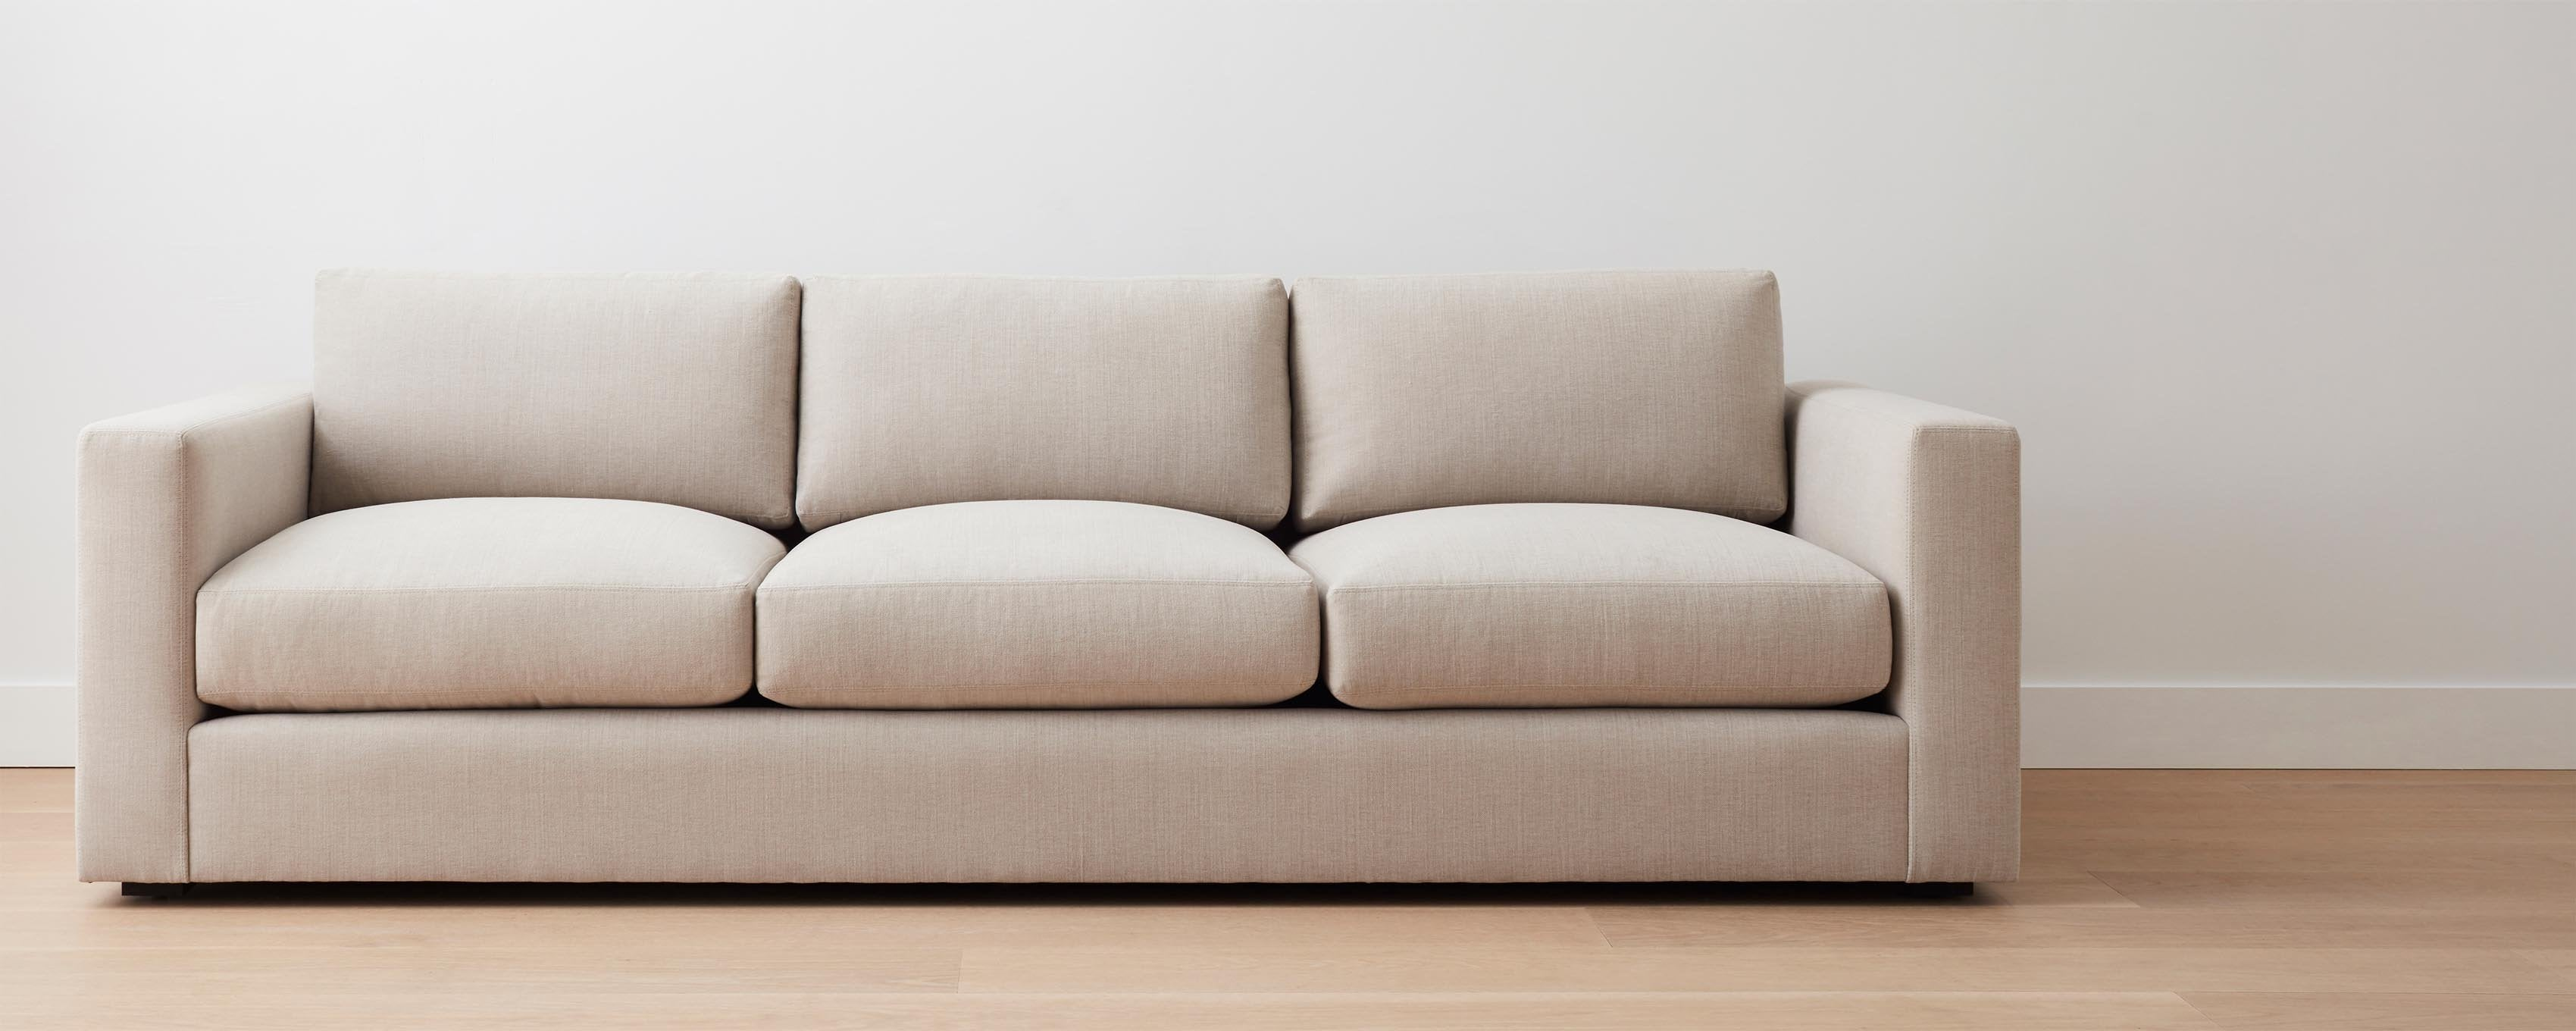 SPECS - the gramercy sofa / sectional